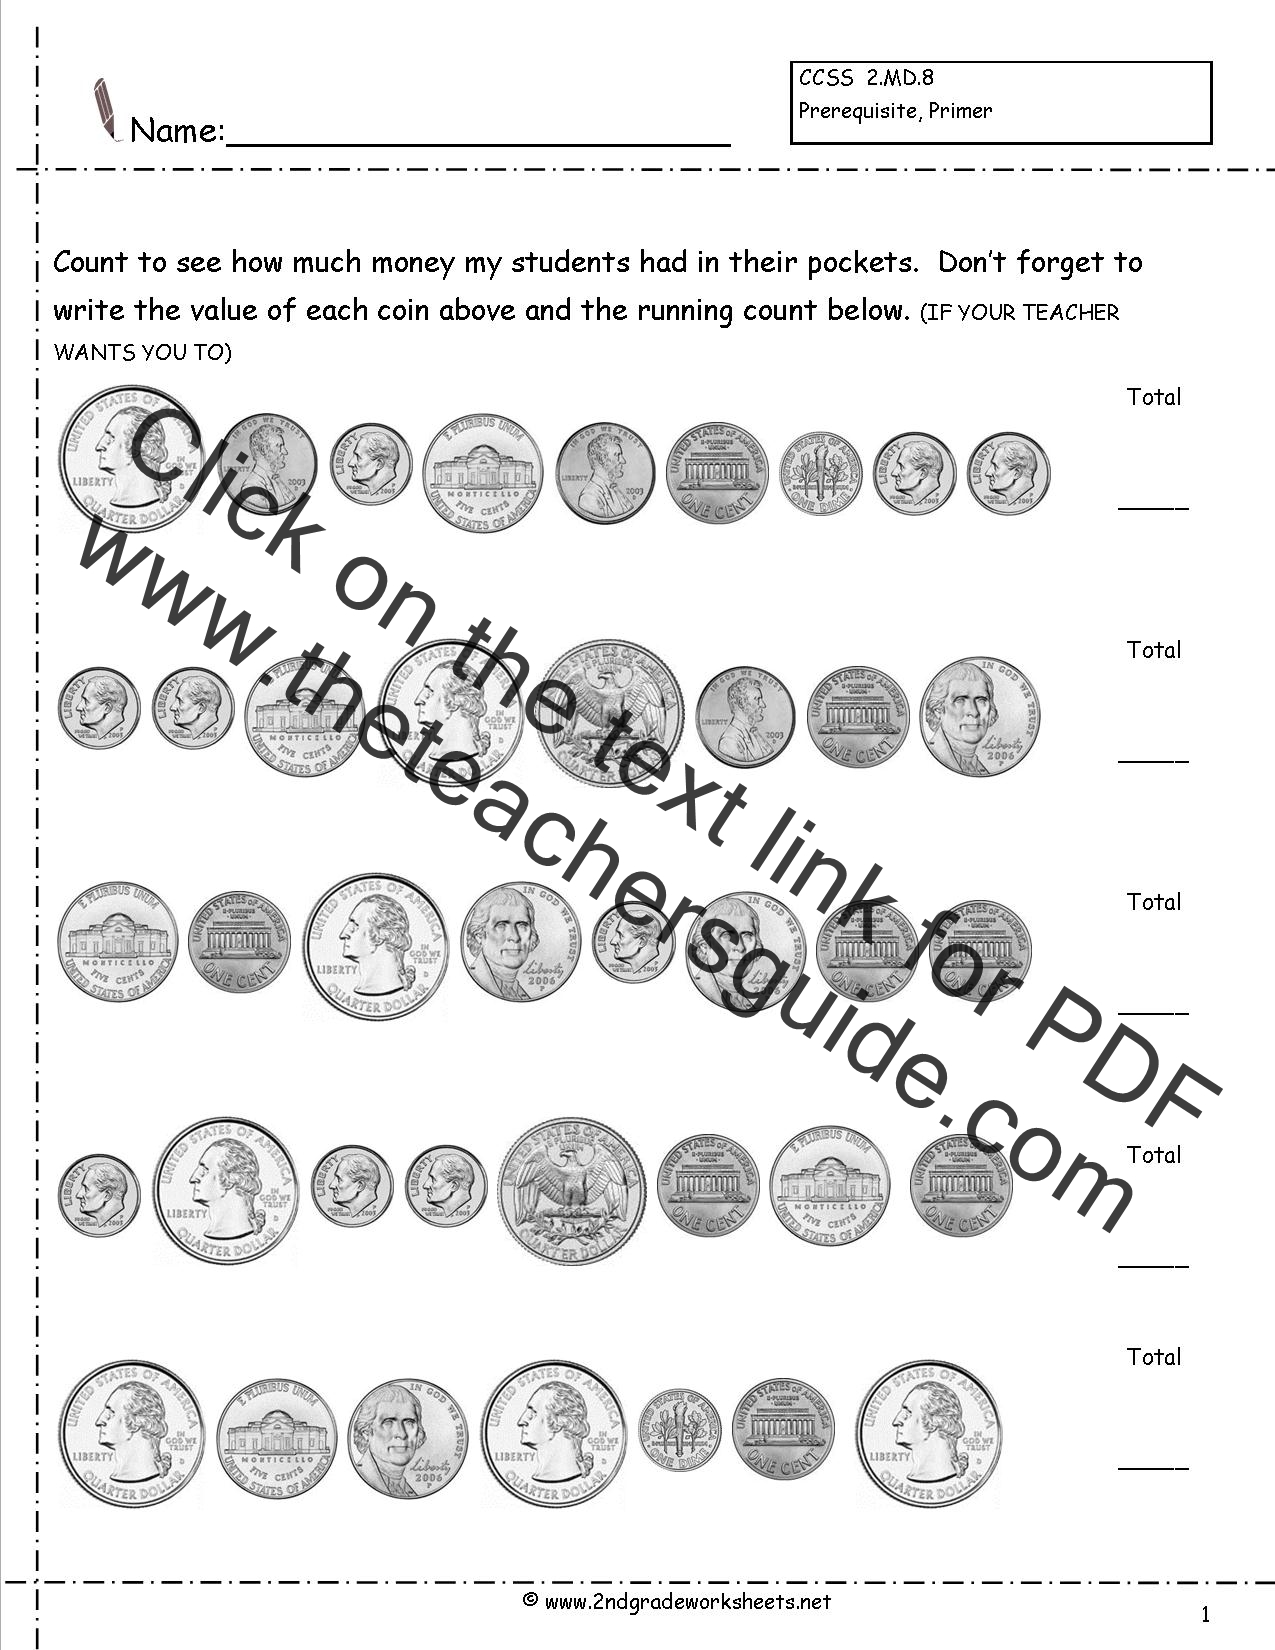 Worksheets Counting Coins Worksheet counting coins and money worksheets printouts worksheets